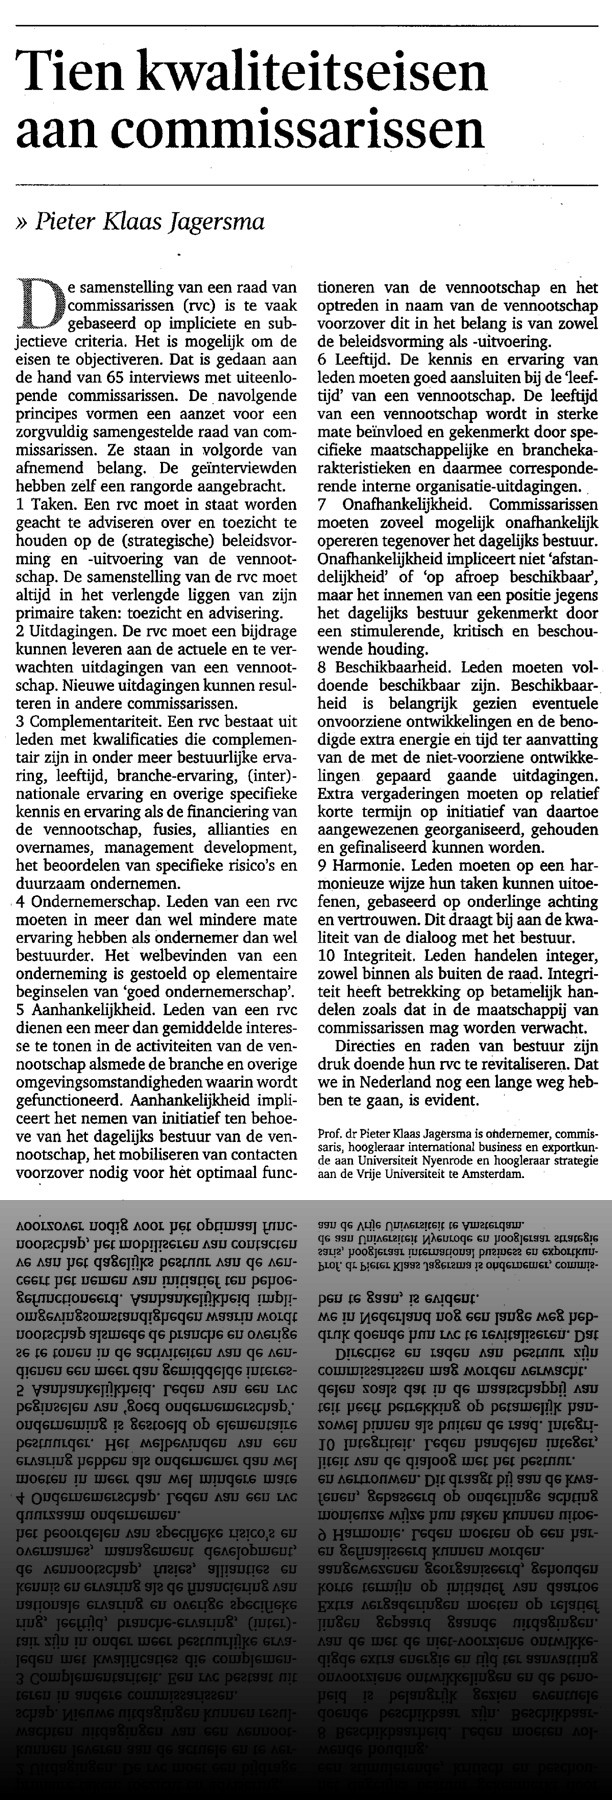 ArticleHetFinancieeleDagblad130504.jpg